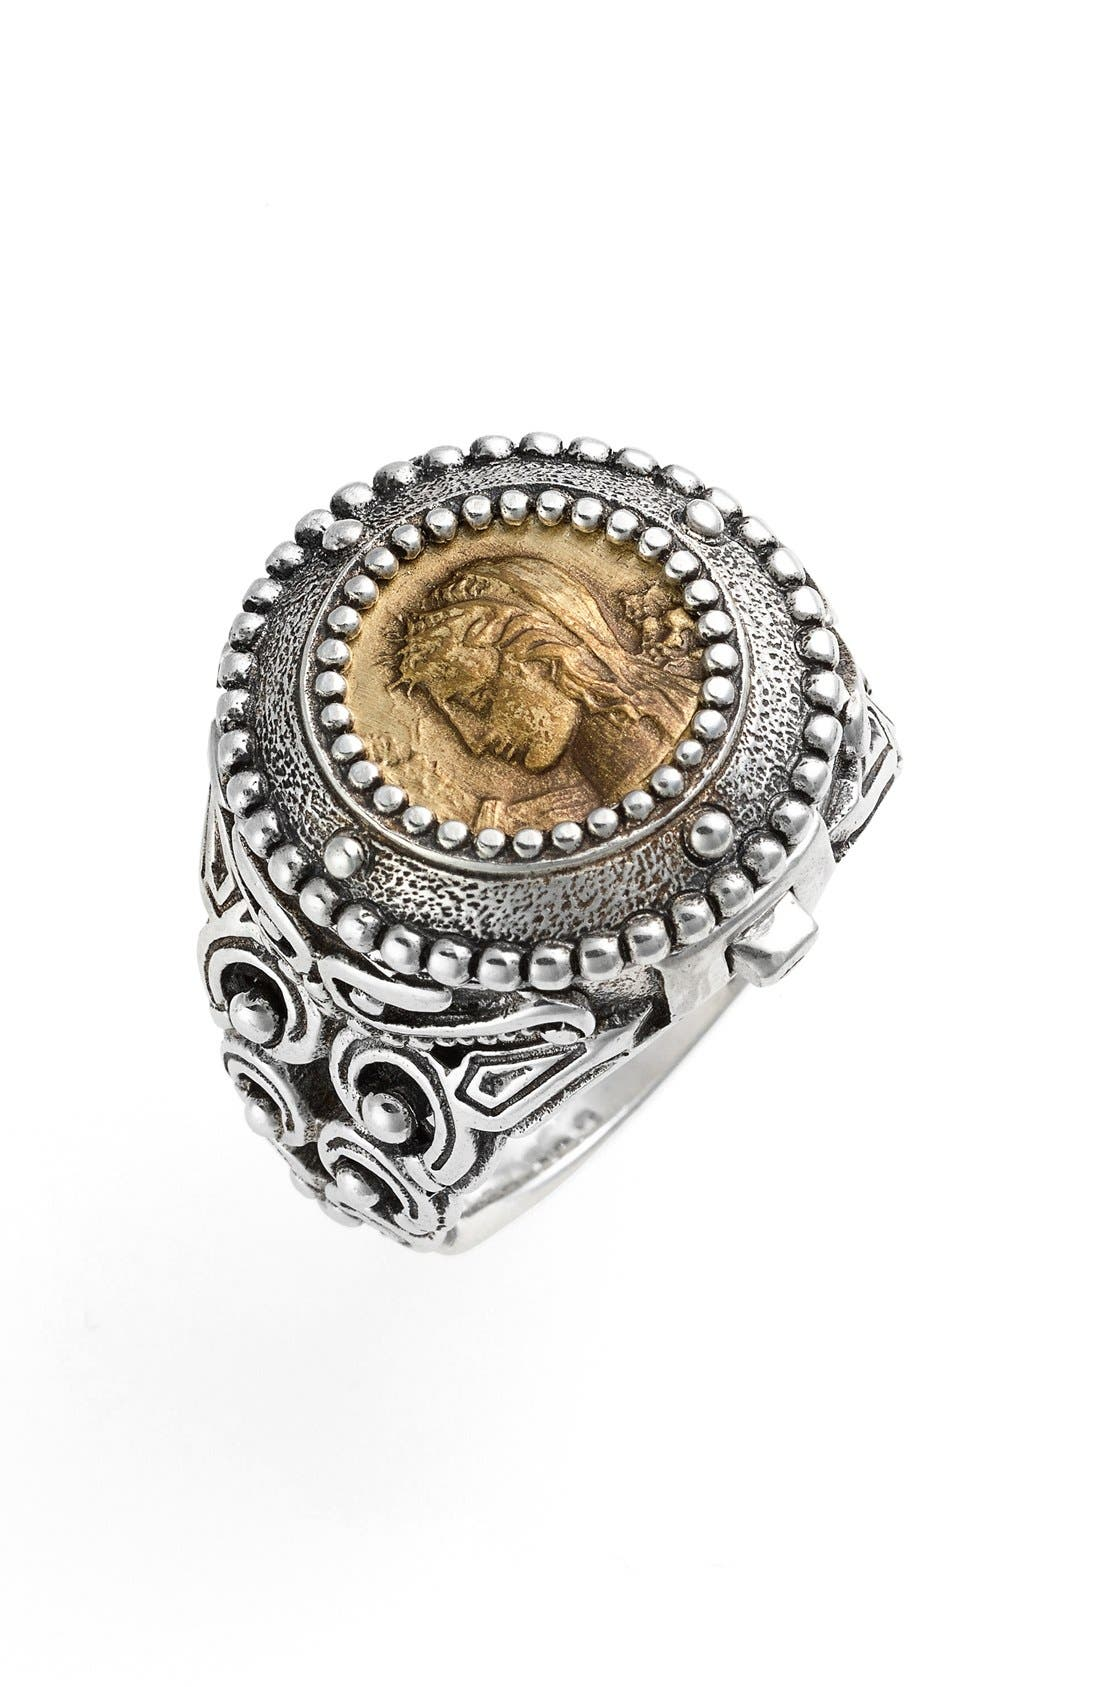 'Arethusa' Hinged Coin Ring,                         Main,                         color, Silver/ Bronze